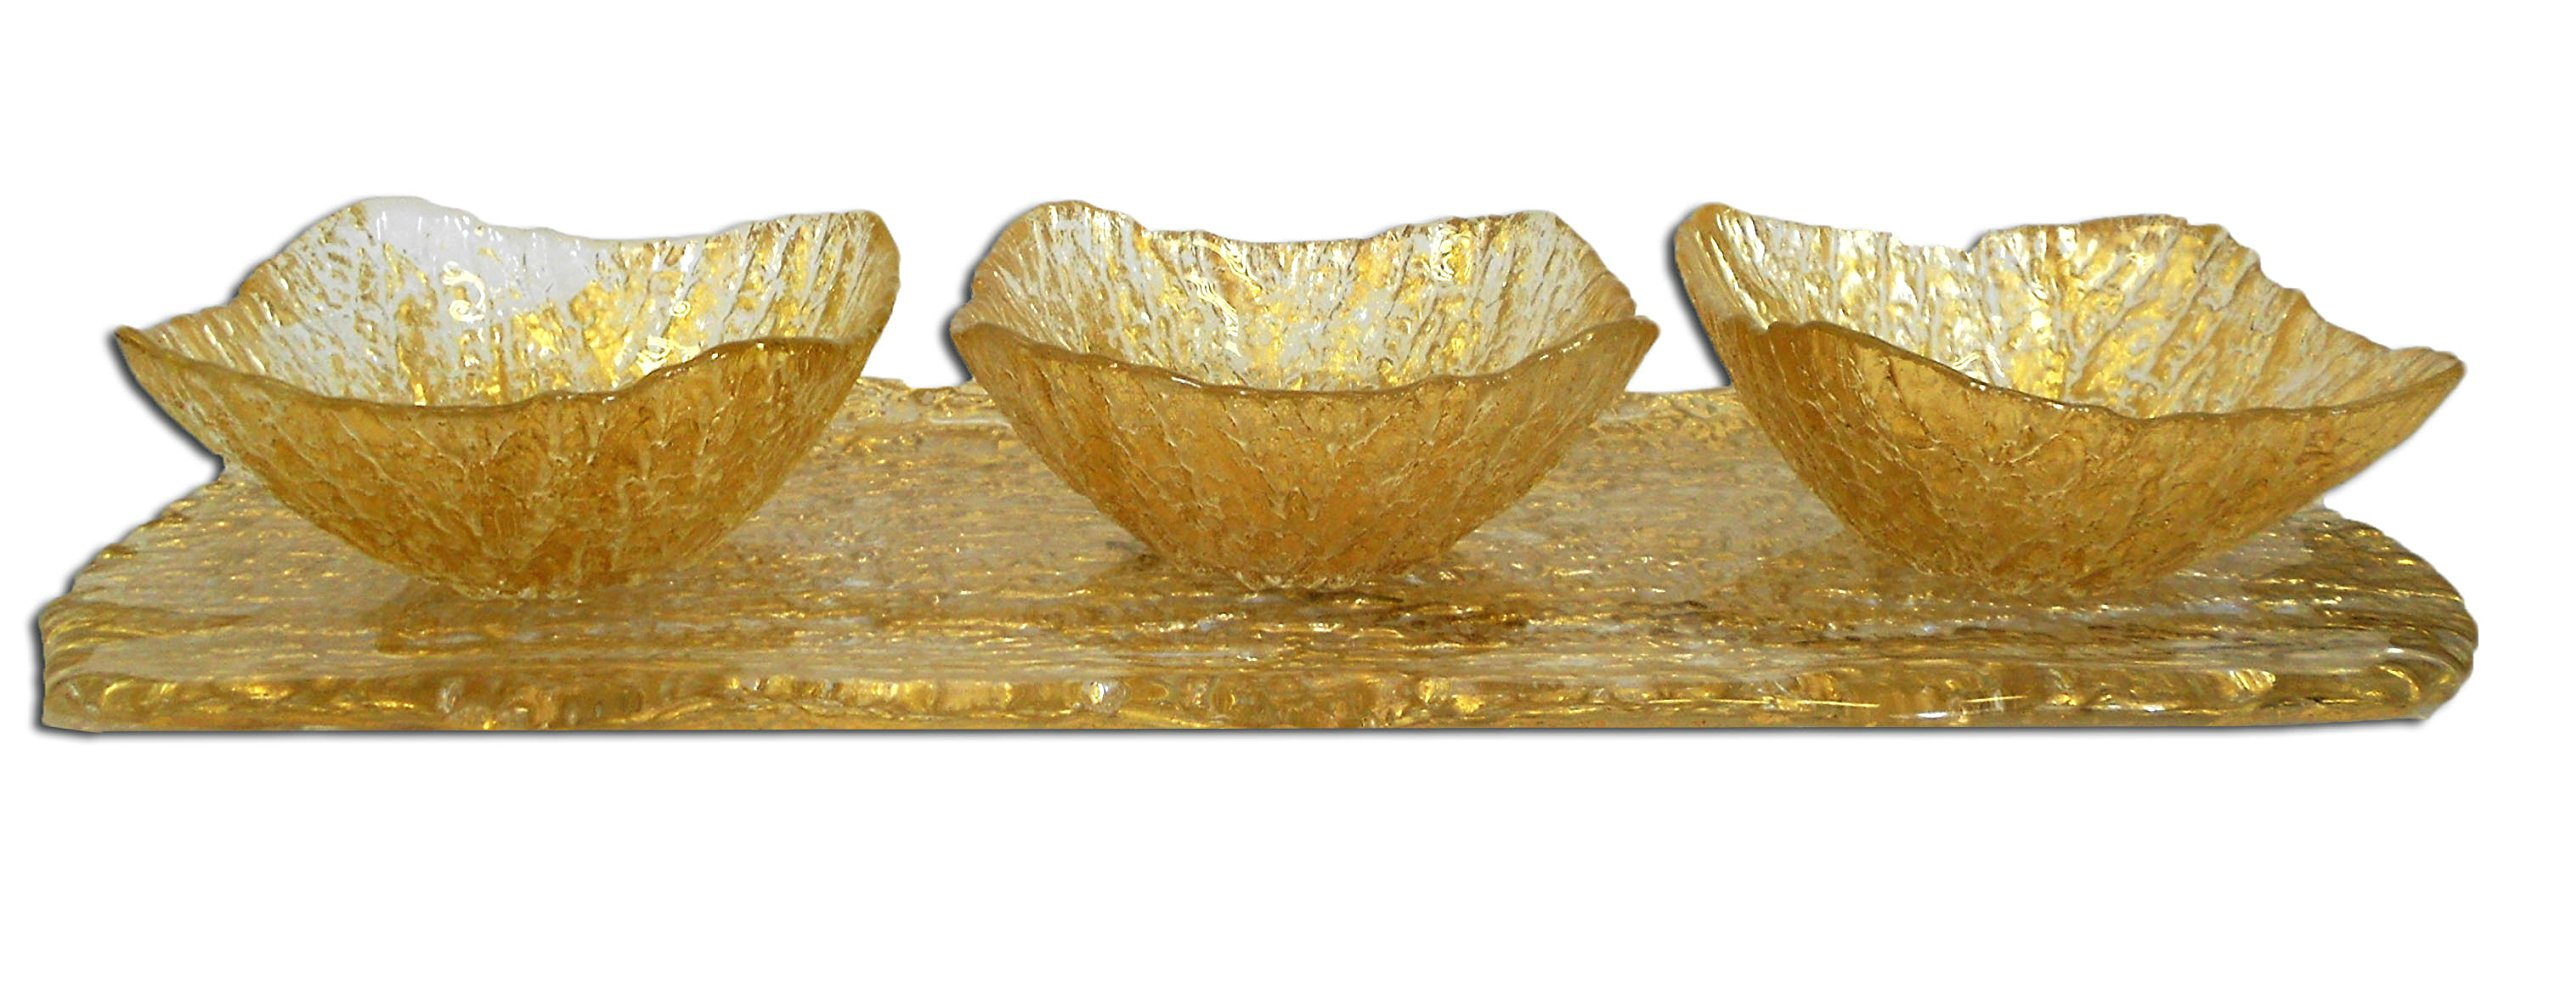 Classic Touch CR547 Beveled 3-Bowl Relish Dish Tray, 18.5-Inch, Gold